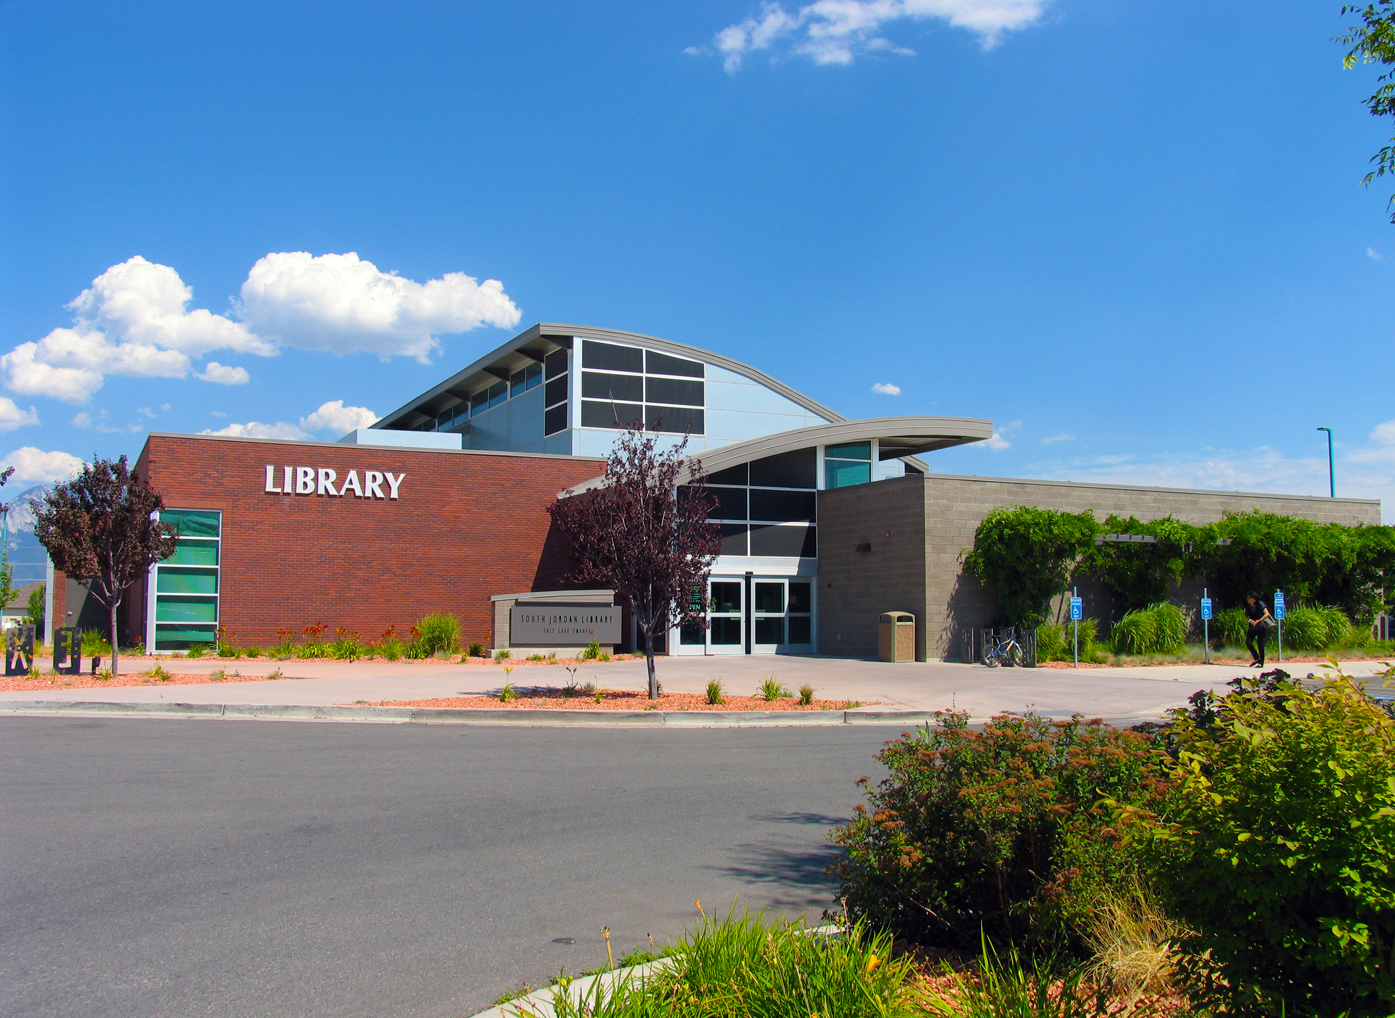 South Jordan Library Reaveley Establishing the directorate of libraries and national documents. south jordan library reaveley